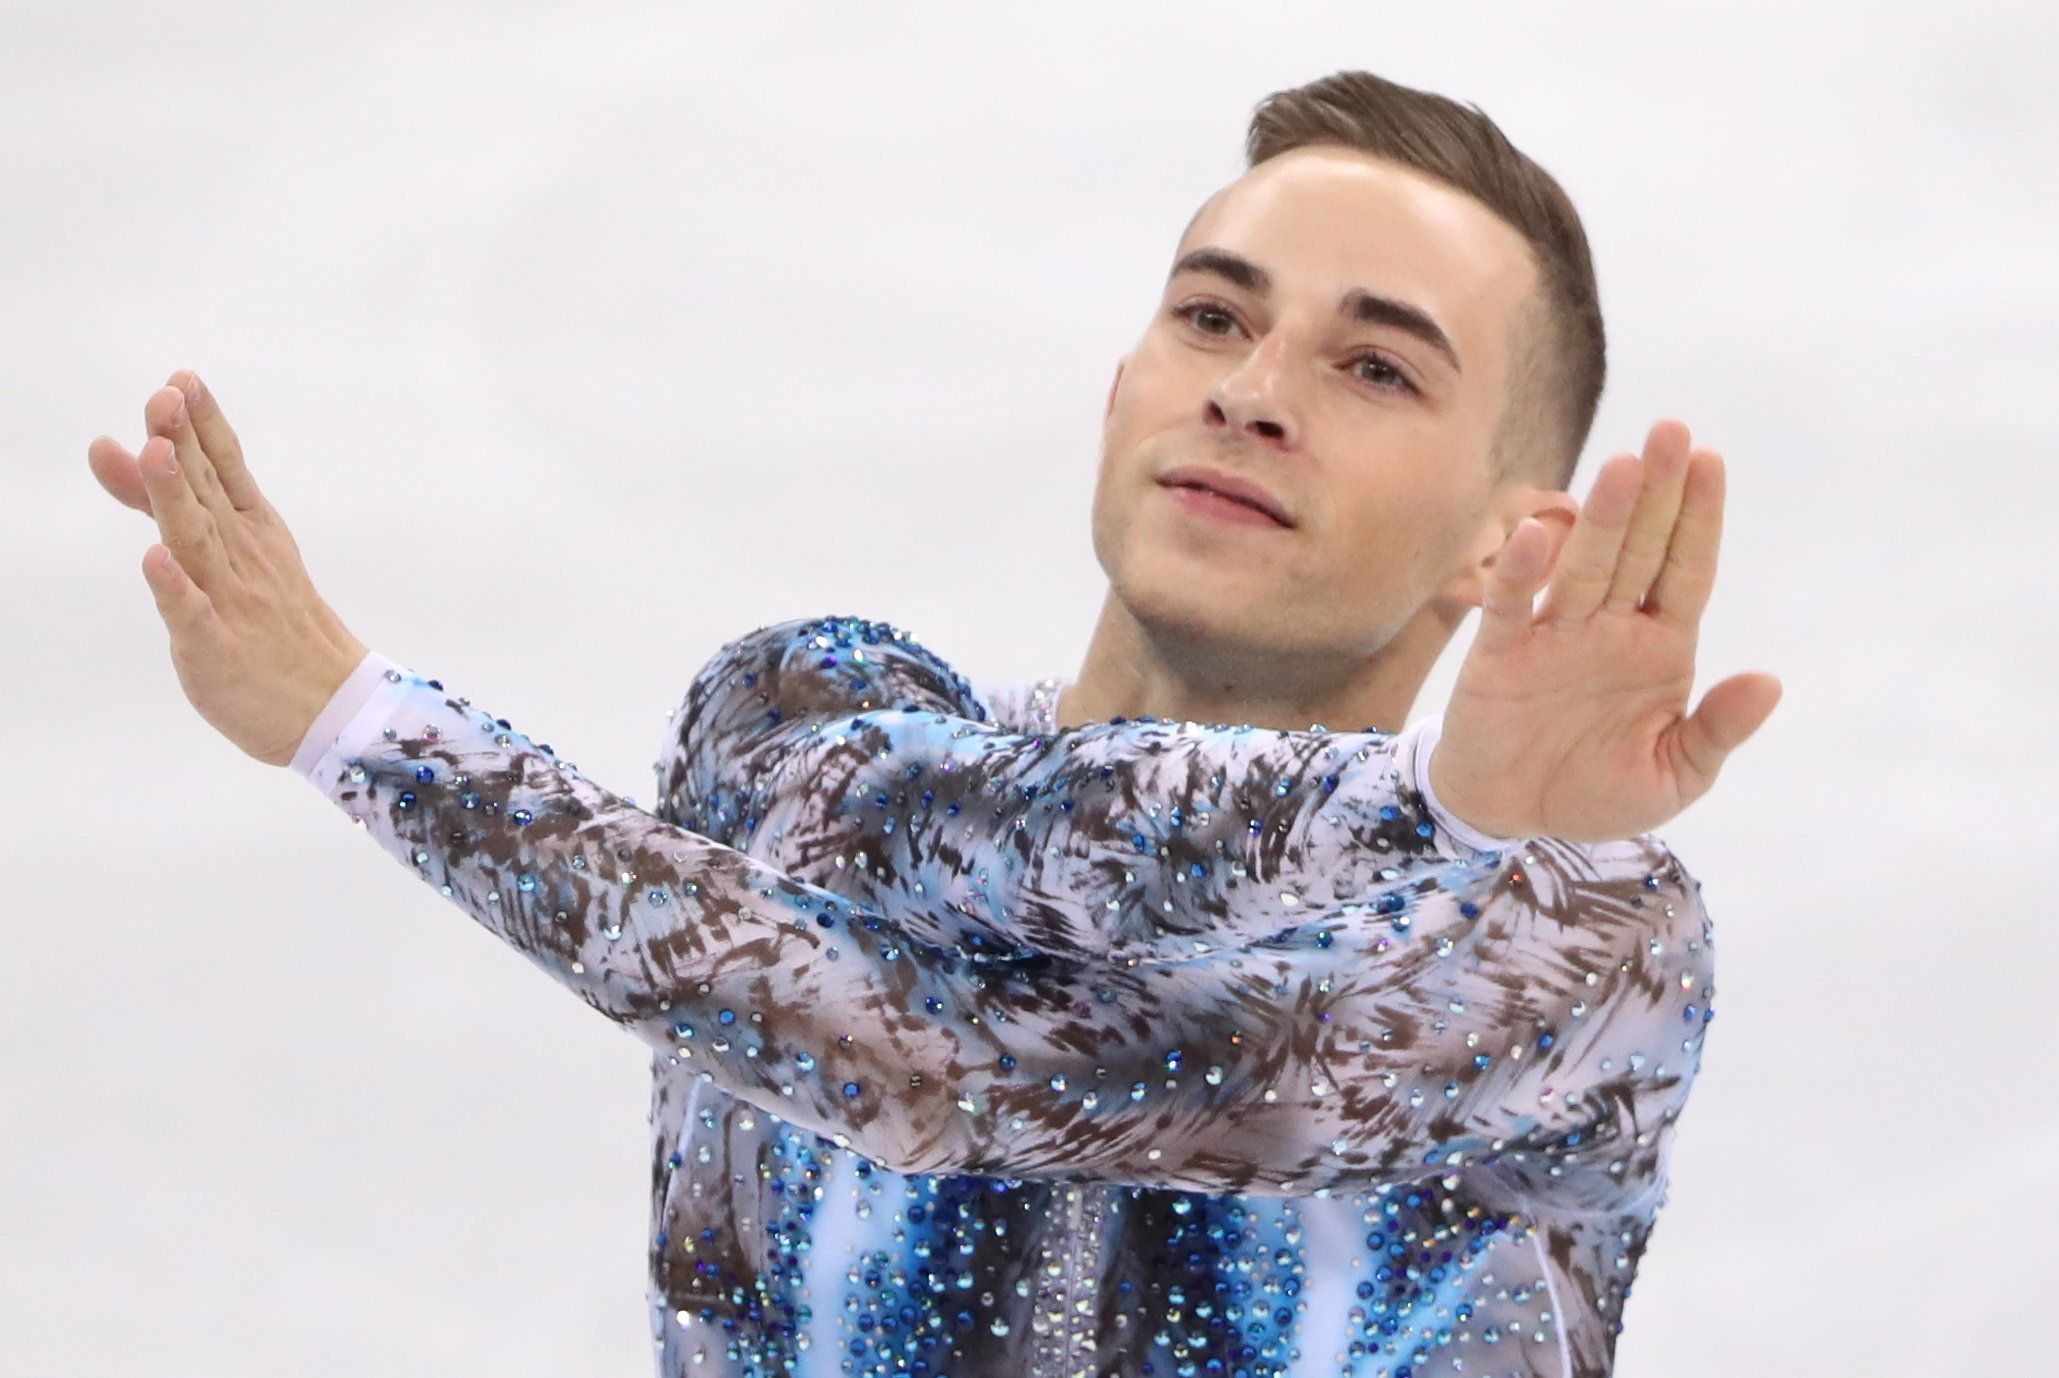 Adam Rippon finished third in the men's free skate of the team event to help Team USA to a bronze medal.